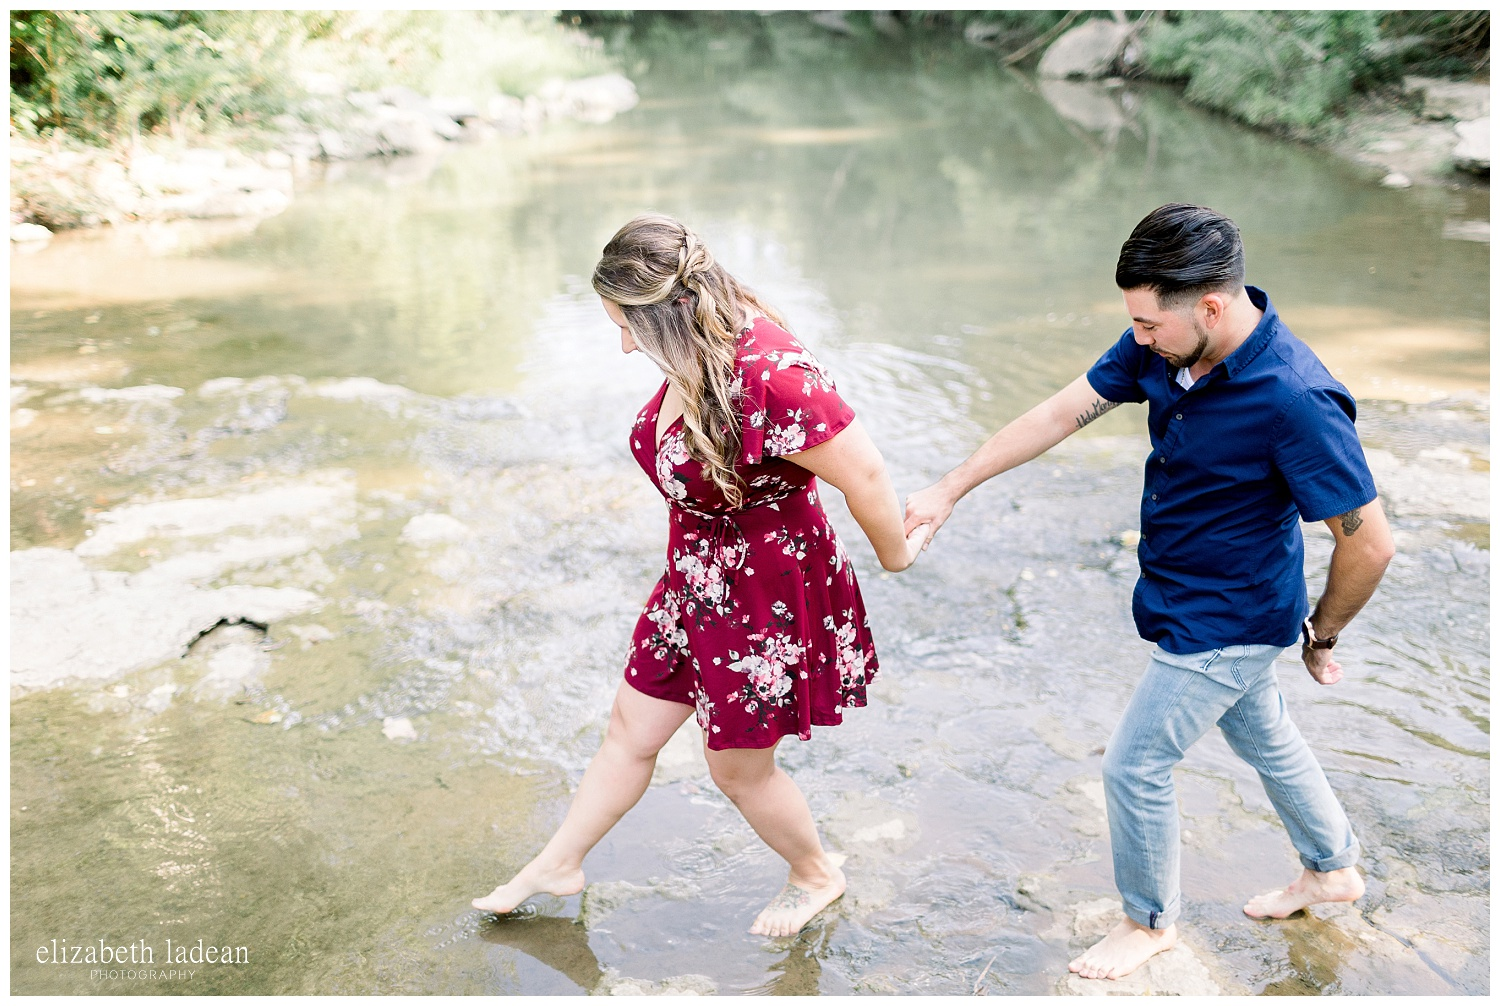 adventurous-engagement-photography-kansas-city-J+R2018-elizabeth-ladean-photography-photo-_9521.jpg